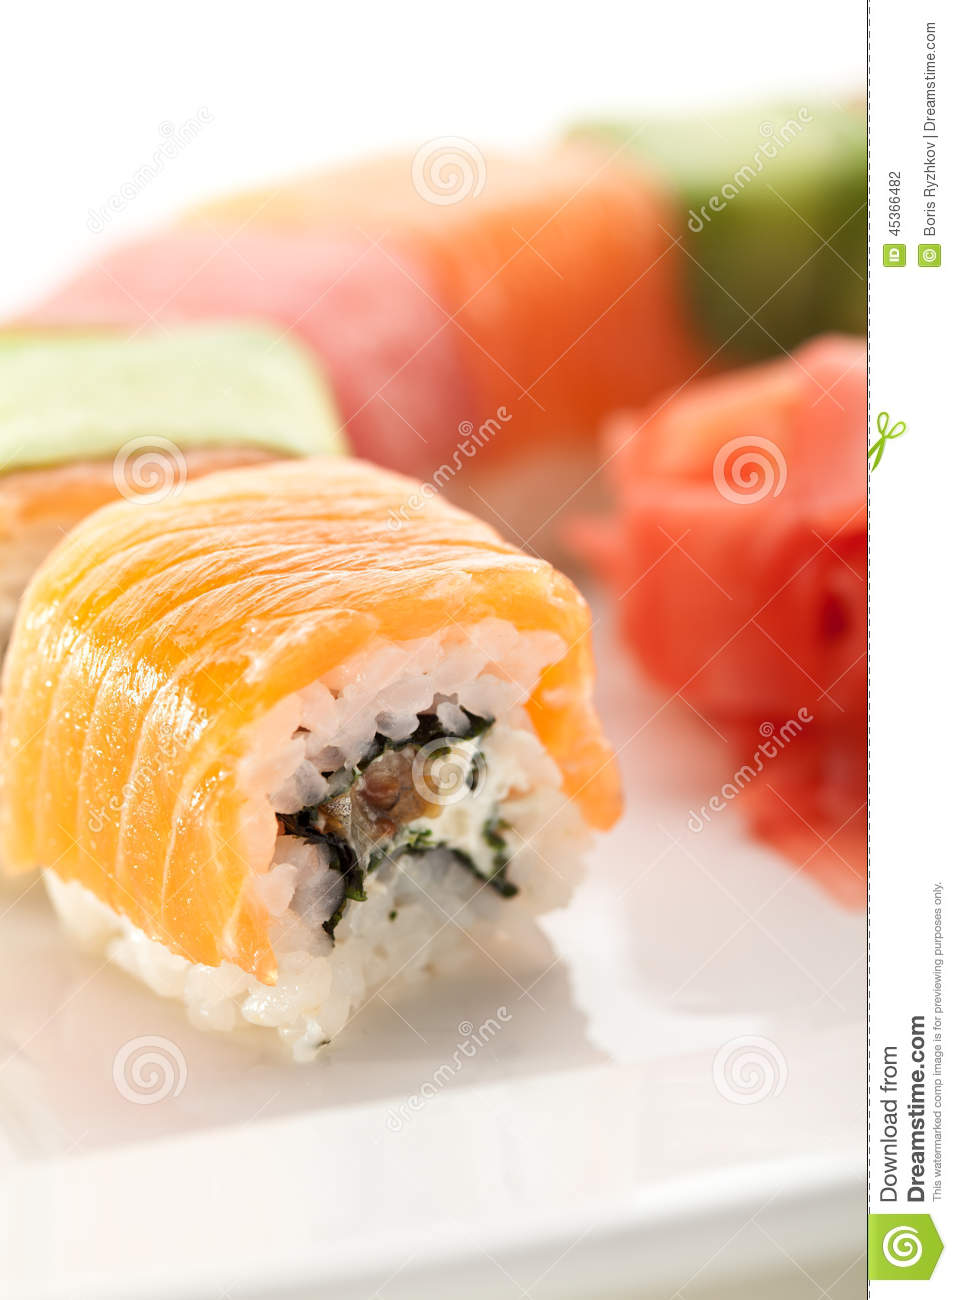 Maki Sushi - Roll with Eel and Cream Cheese inside. Tuna, Salmon ...